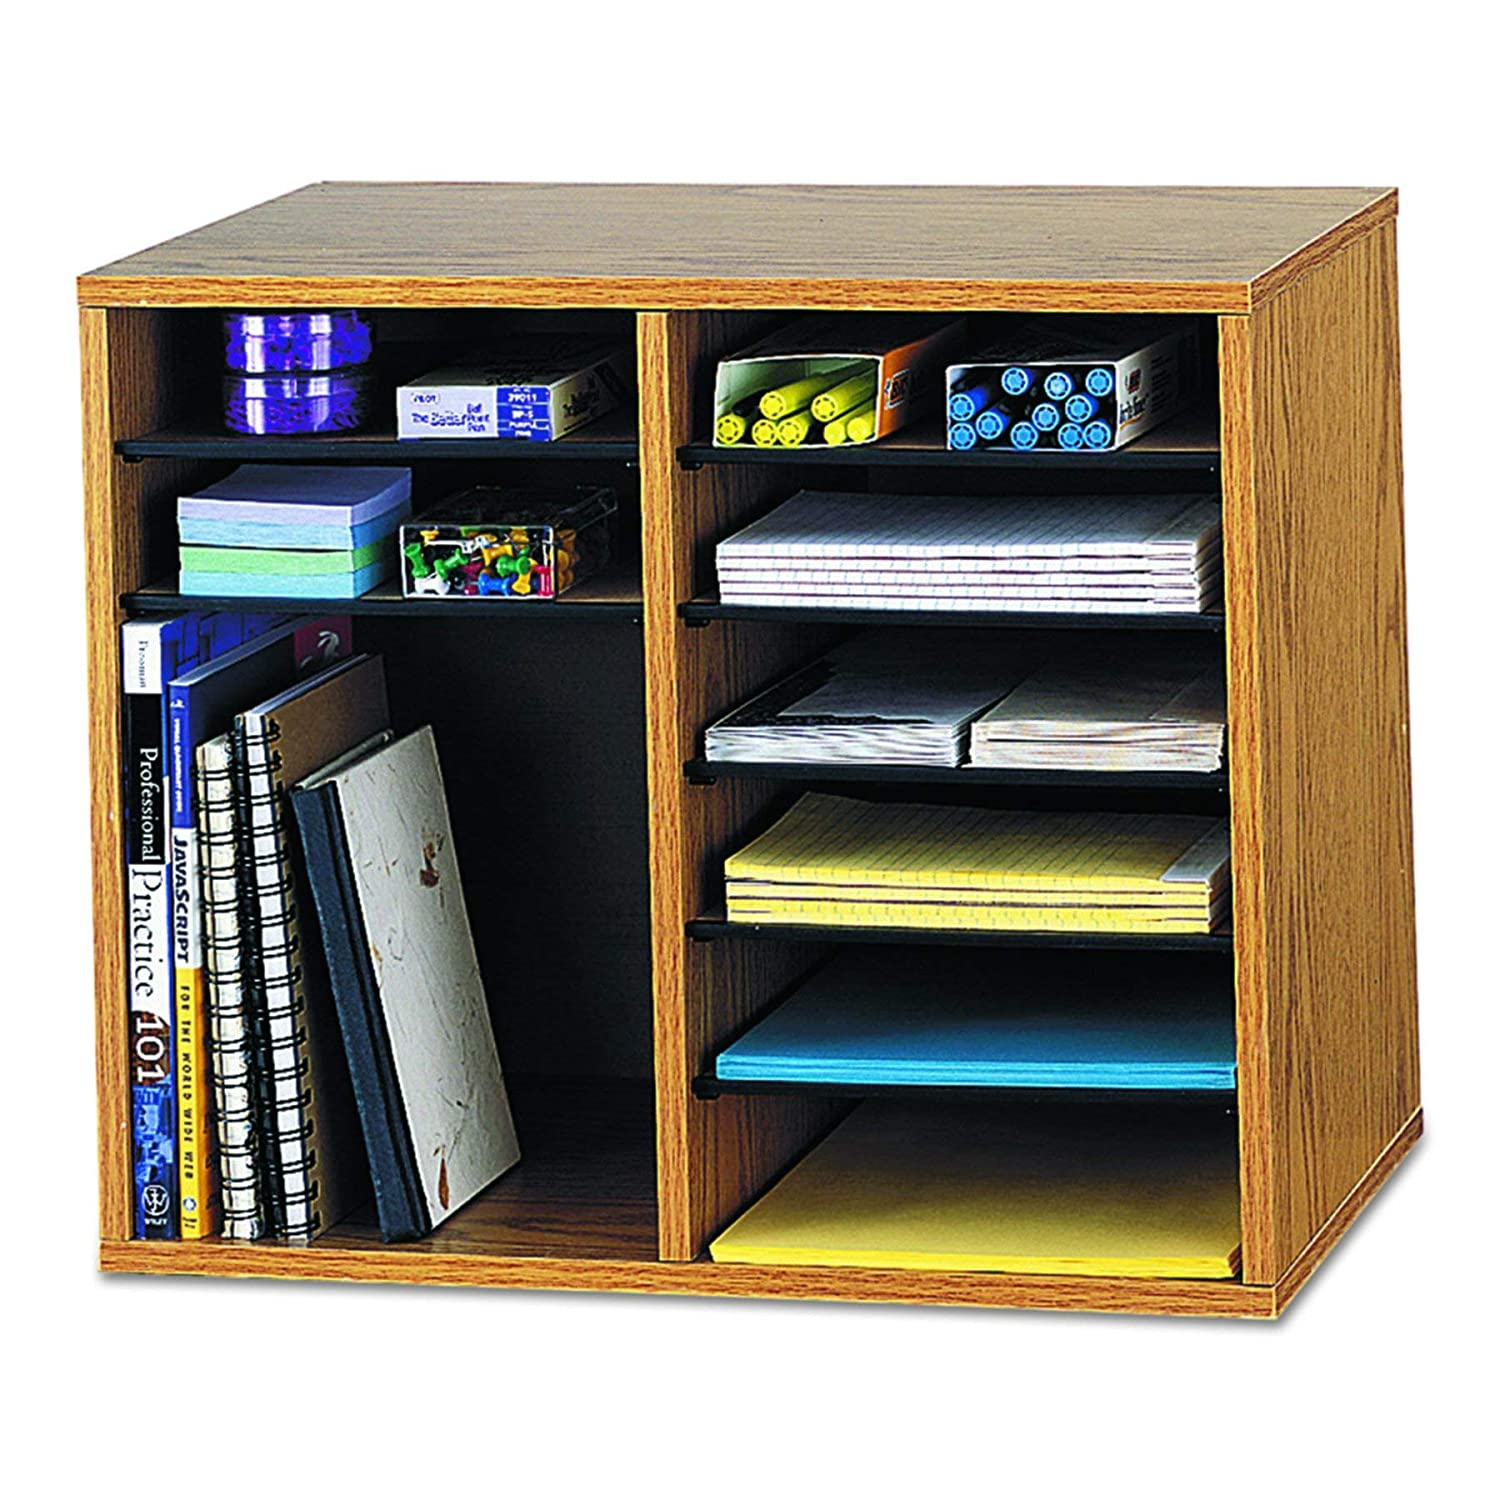 Safco Adjustable Wood Literature Organiser with 12 Compartments 9420MO